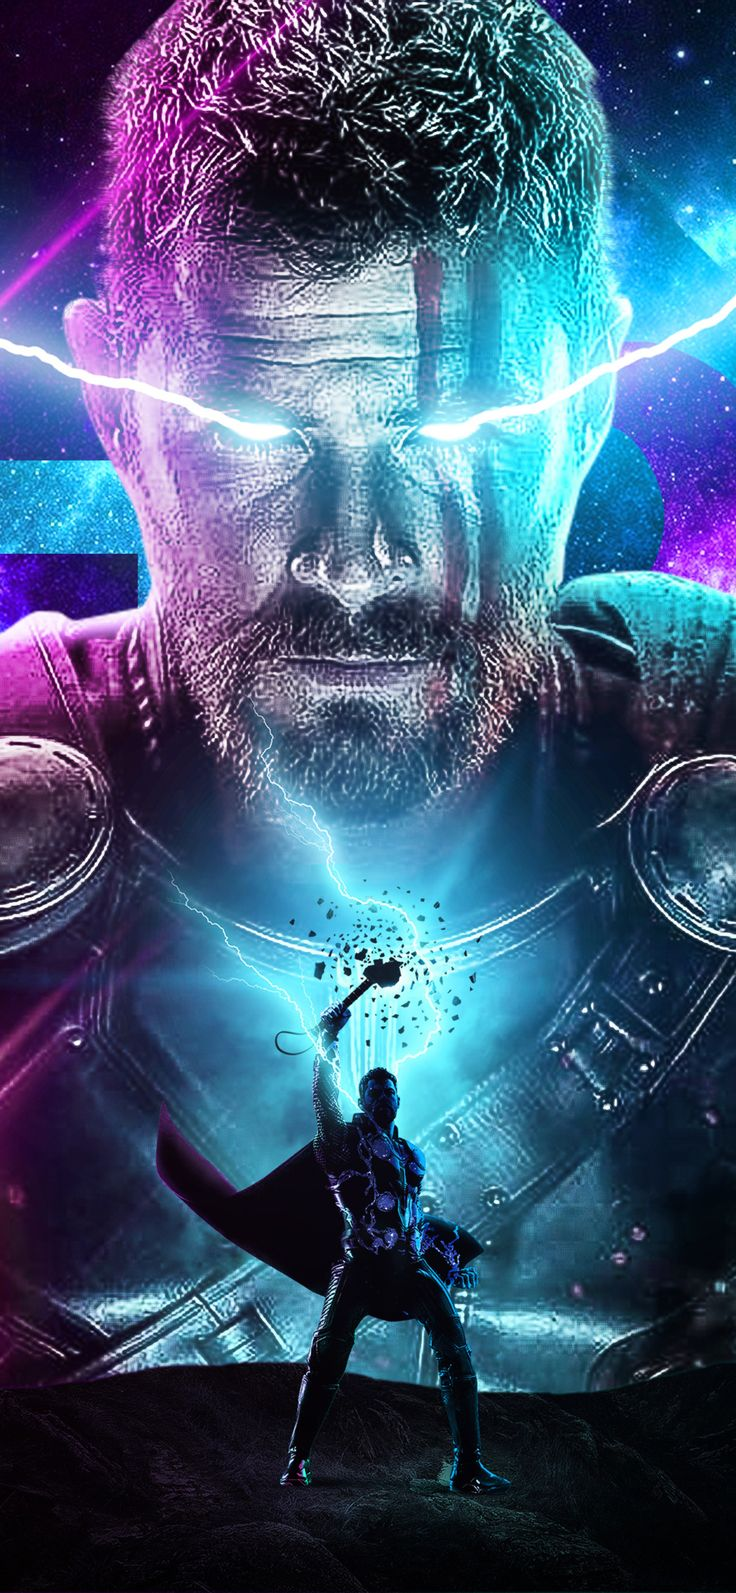 Thor Behance Art In 1125x2436 Resolution in 2020 Marvel